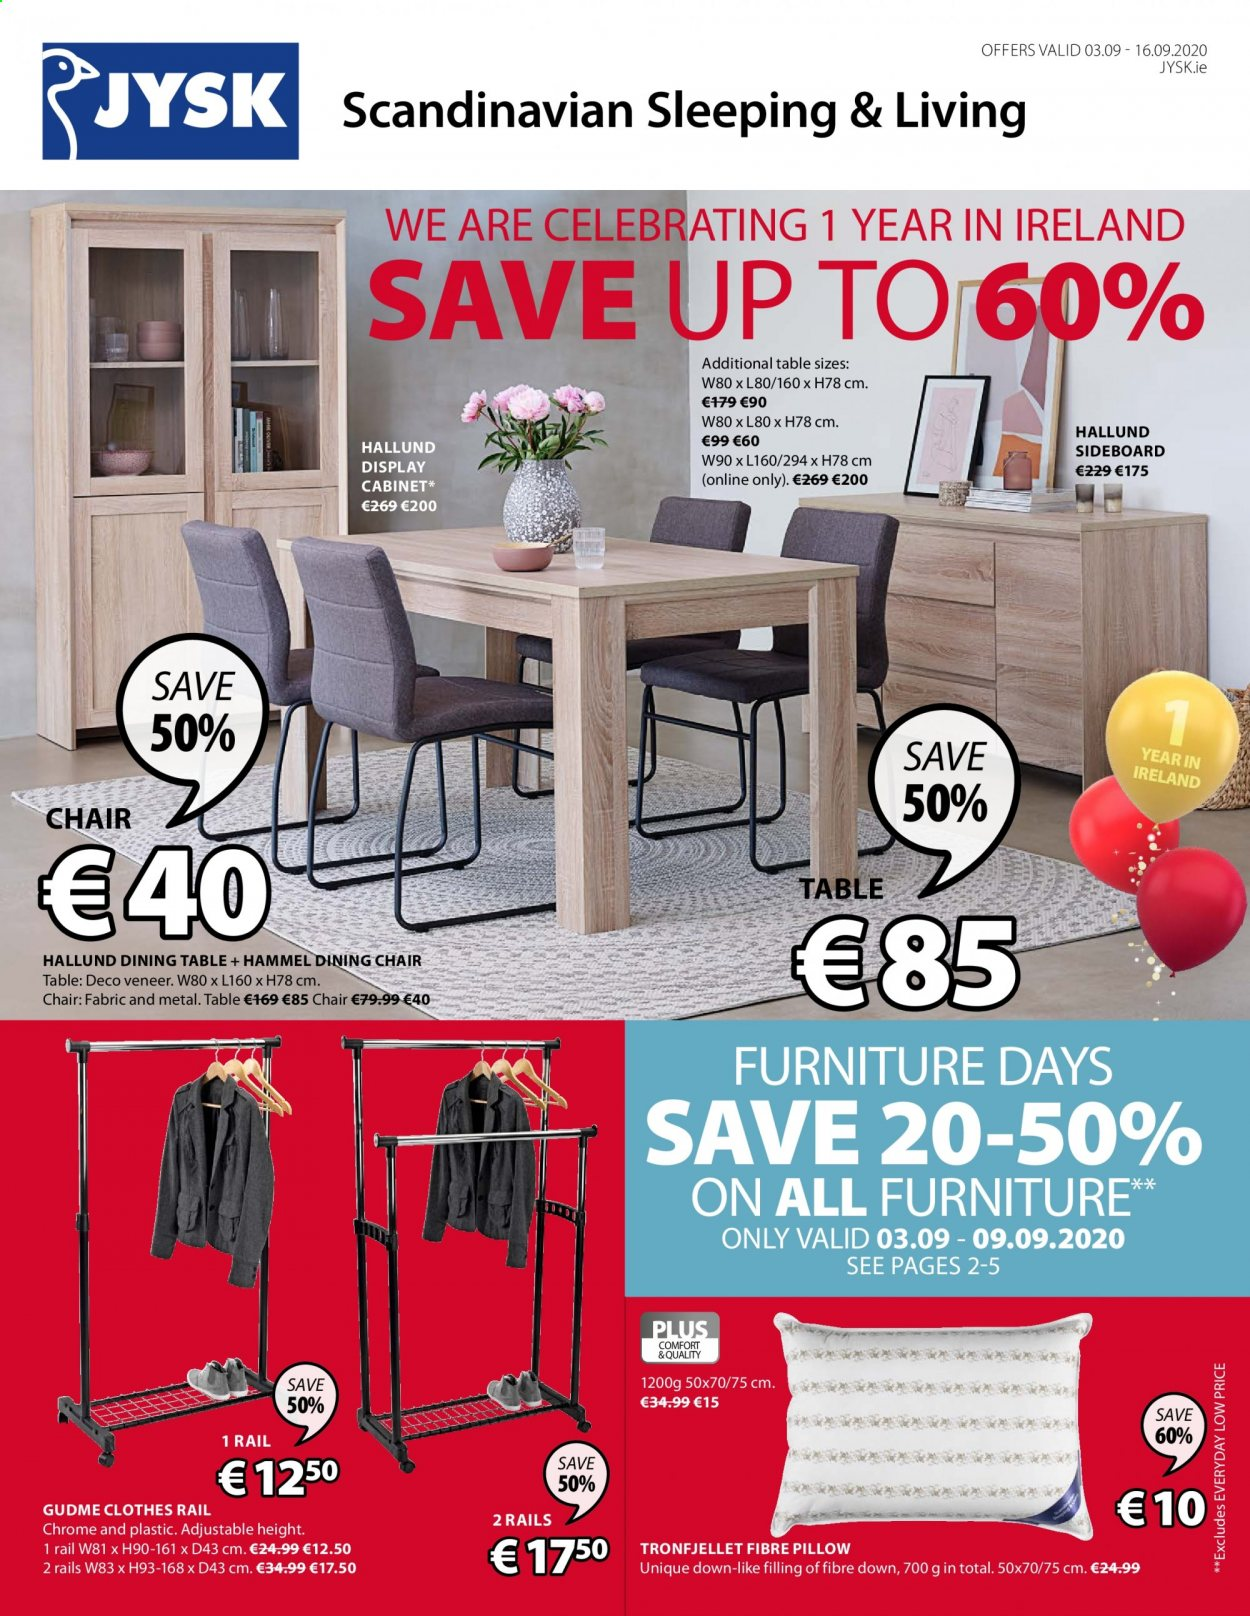 JYSK offer  - 3.9.2020 - 16.9.2020 - Sales products - cabinet, dining table, furniture, rail, sideboard, table, chair, pillow, dining chair, clothes. Page 1.